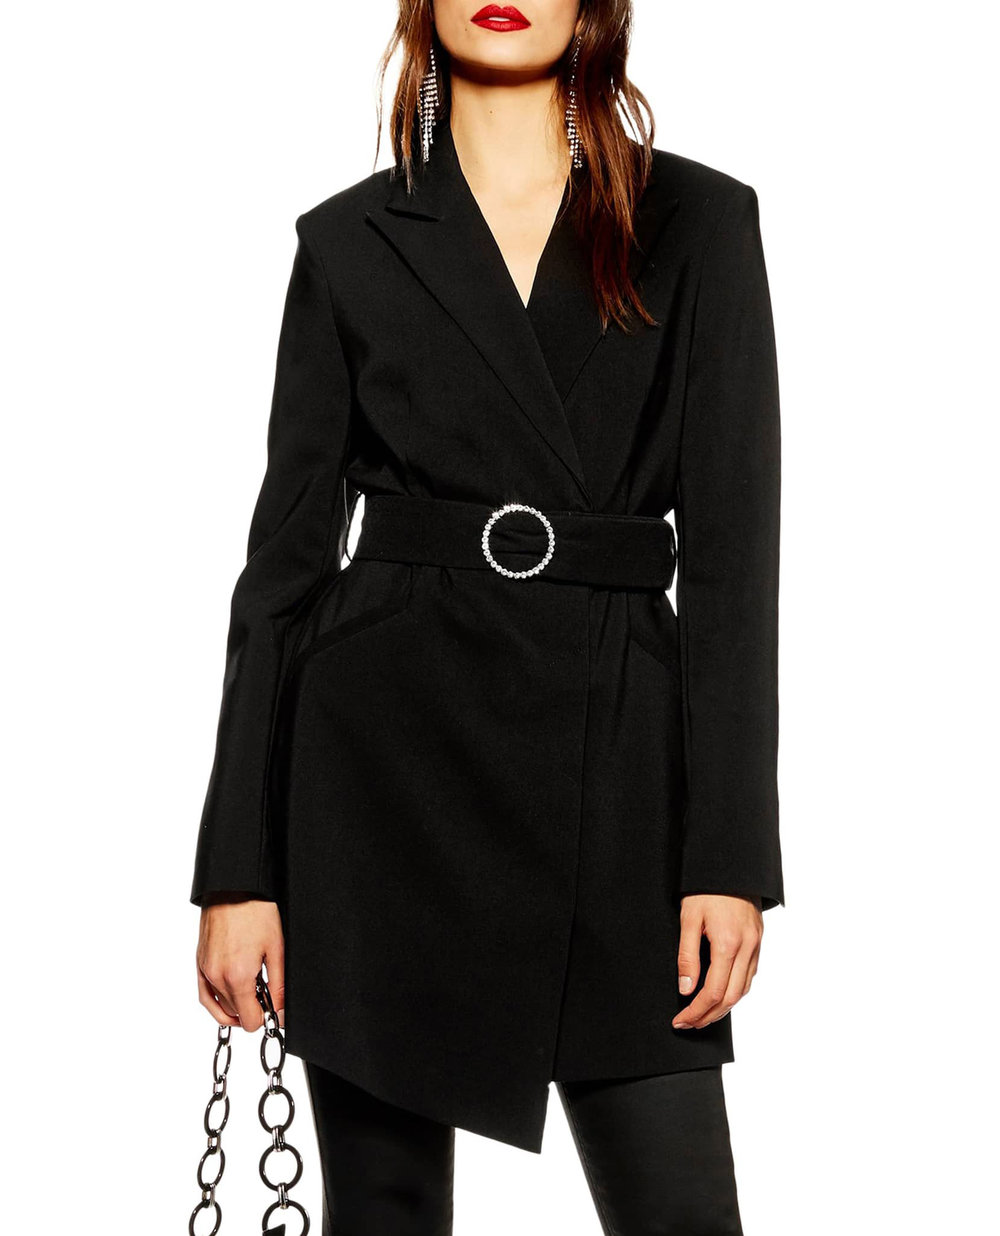 Topshop Blazer Dress     $125.00